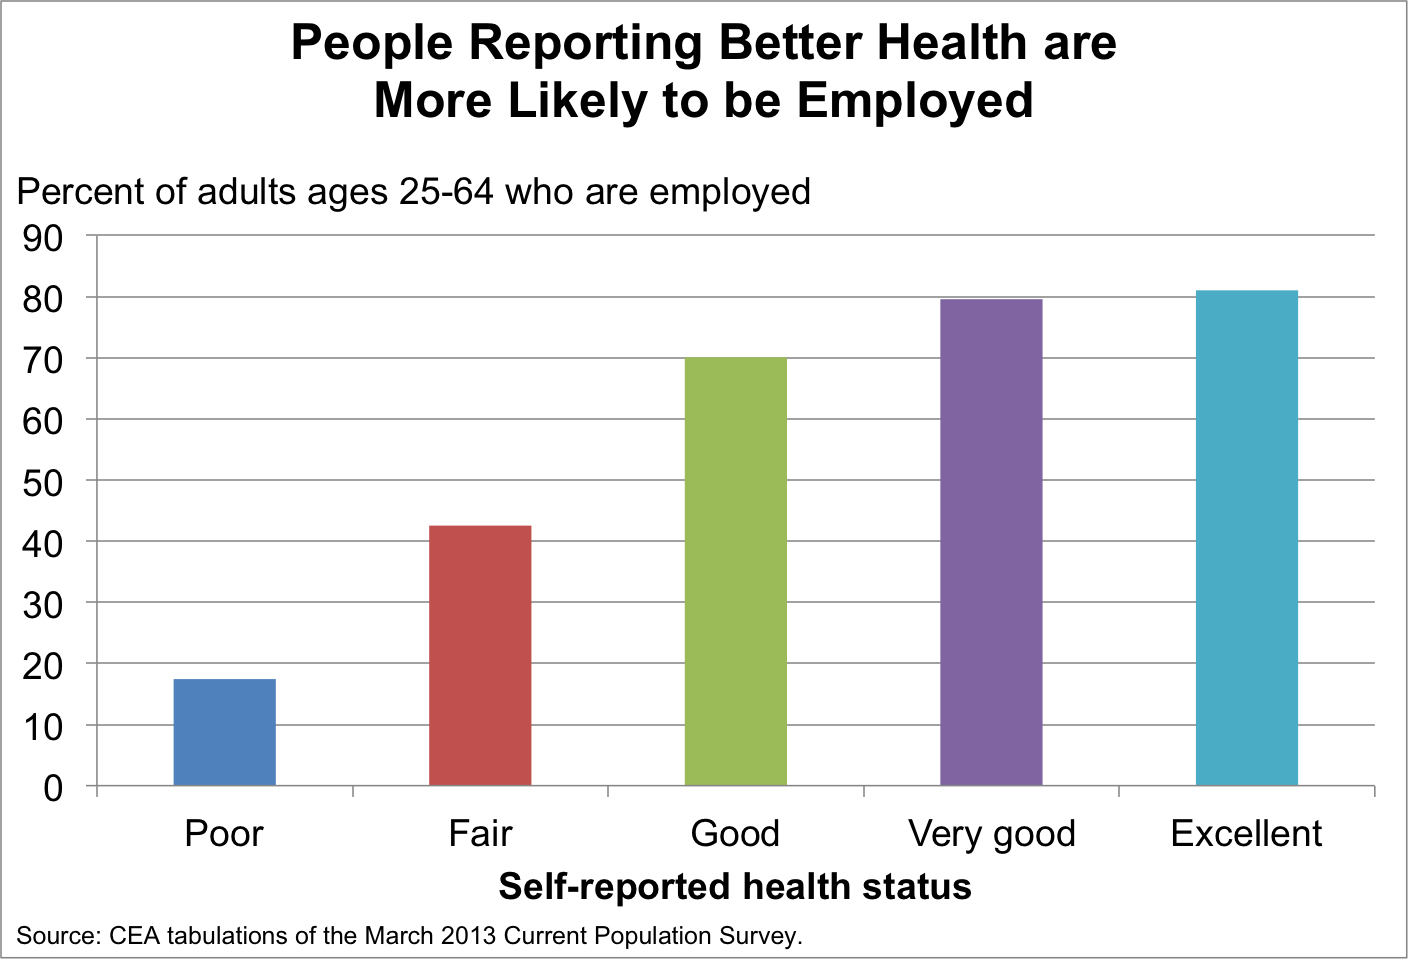 healthier people are more likely to be employed